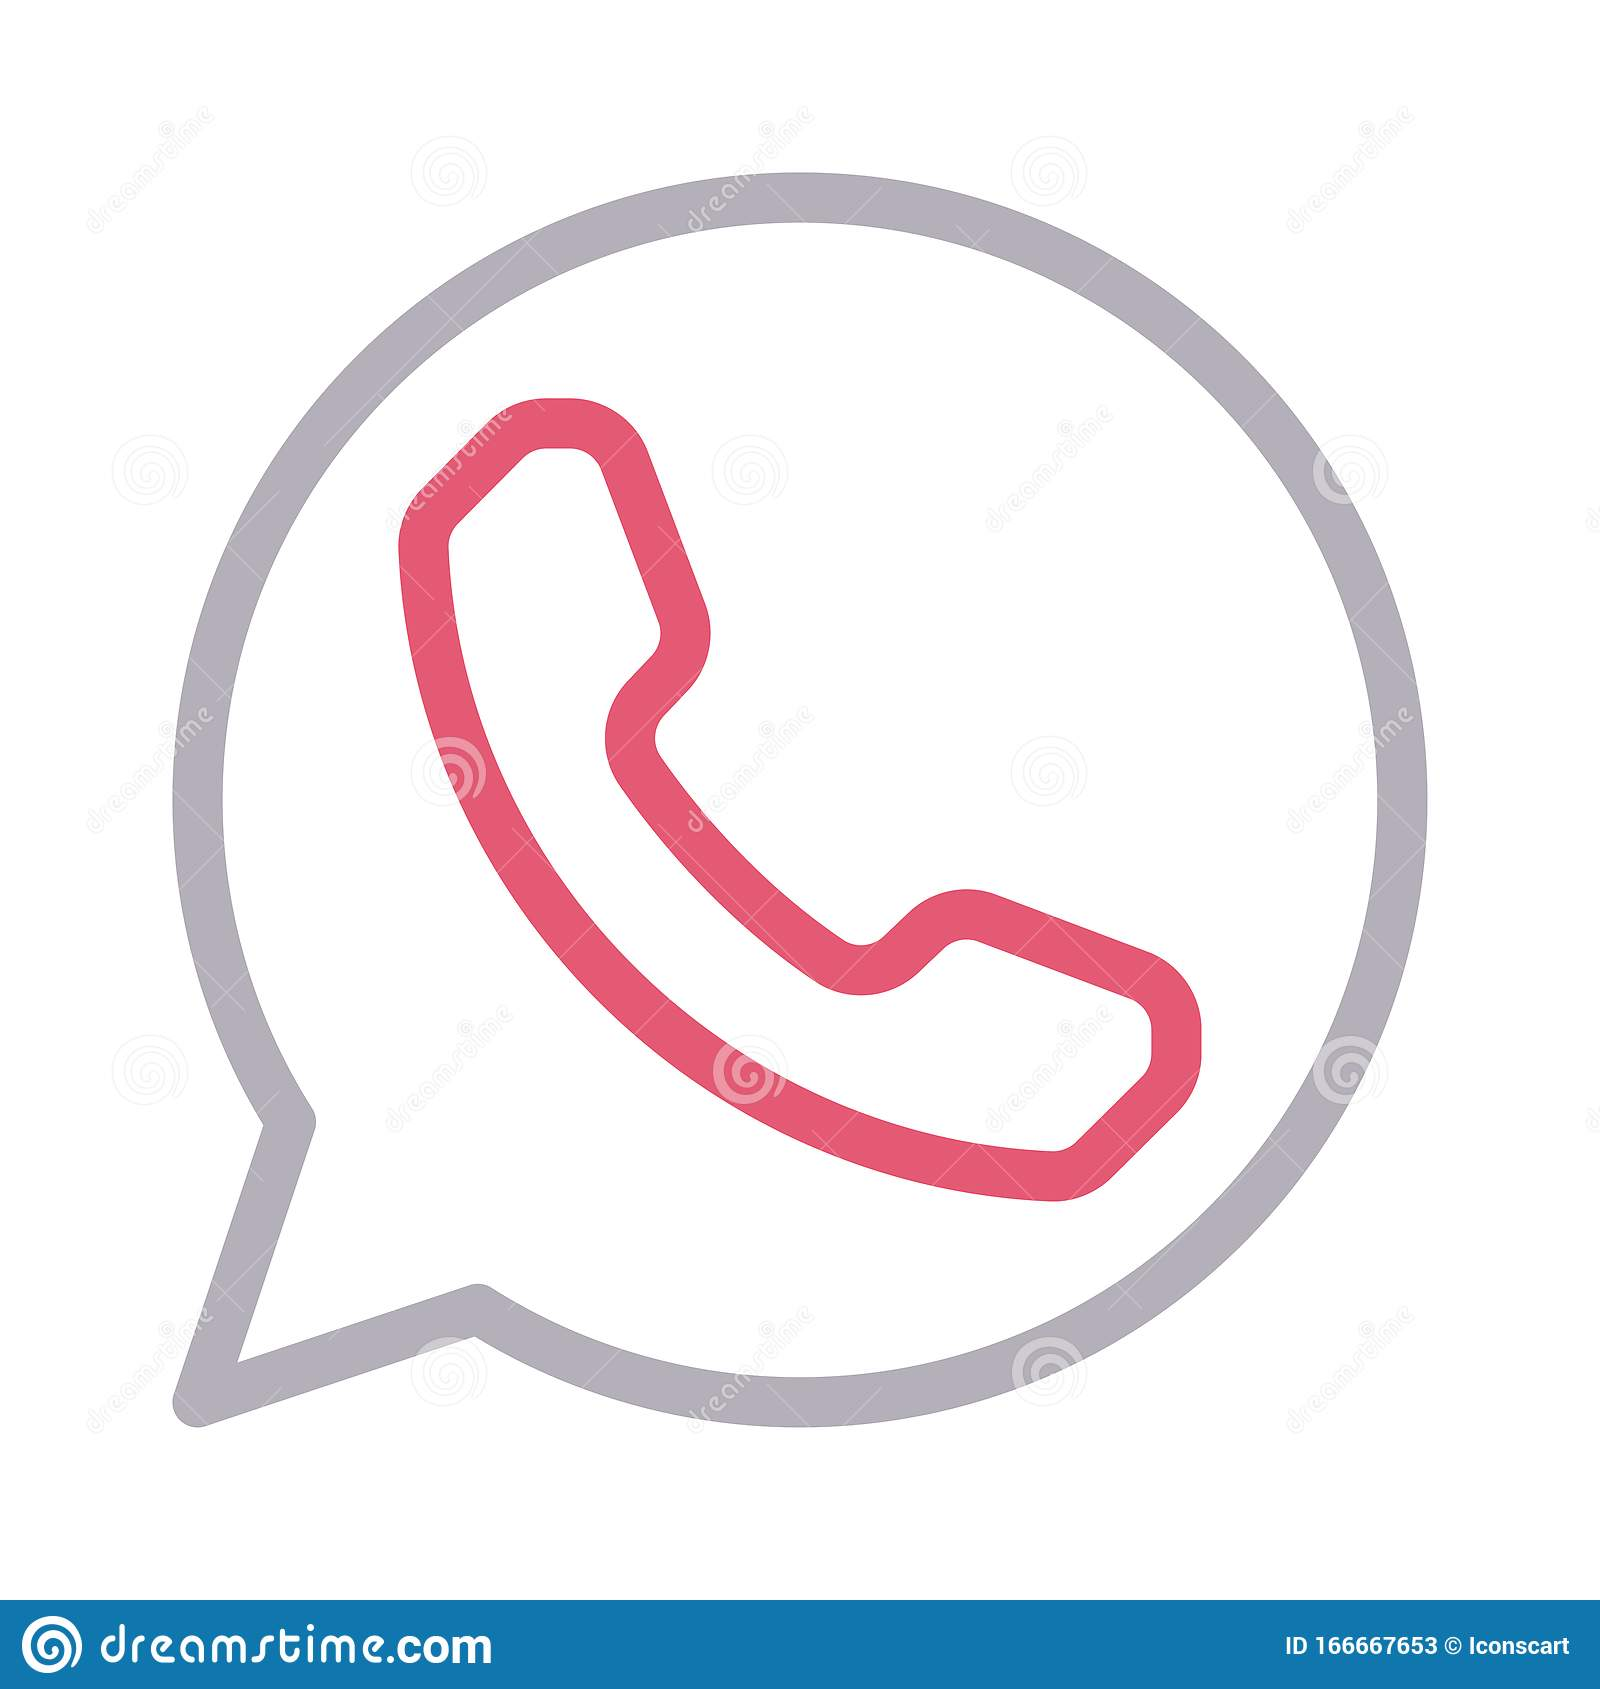 Icon Whats App Stock Illustrations 707 Icon Whats App Stock Illustrations Vectors Clipart Dreamstime